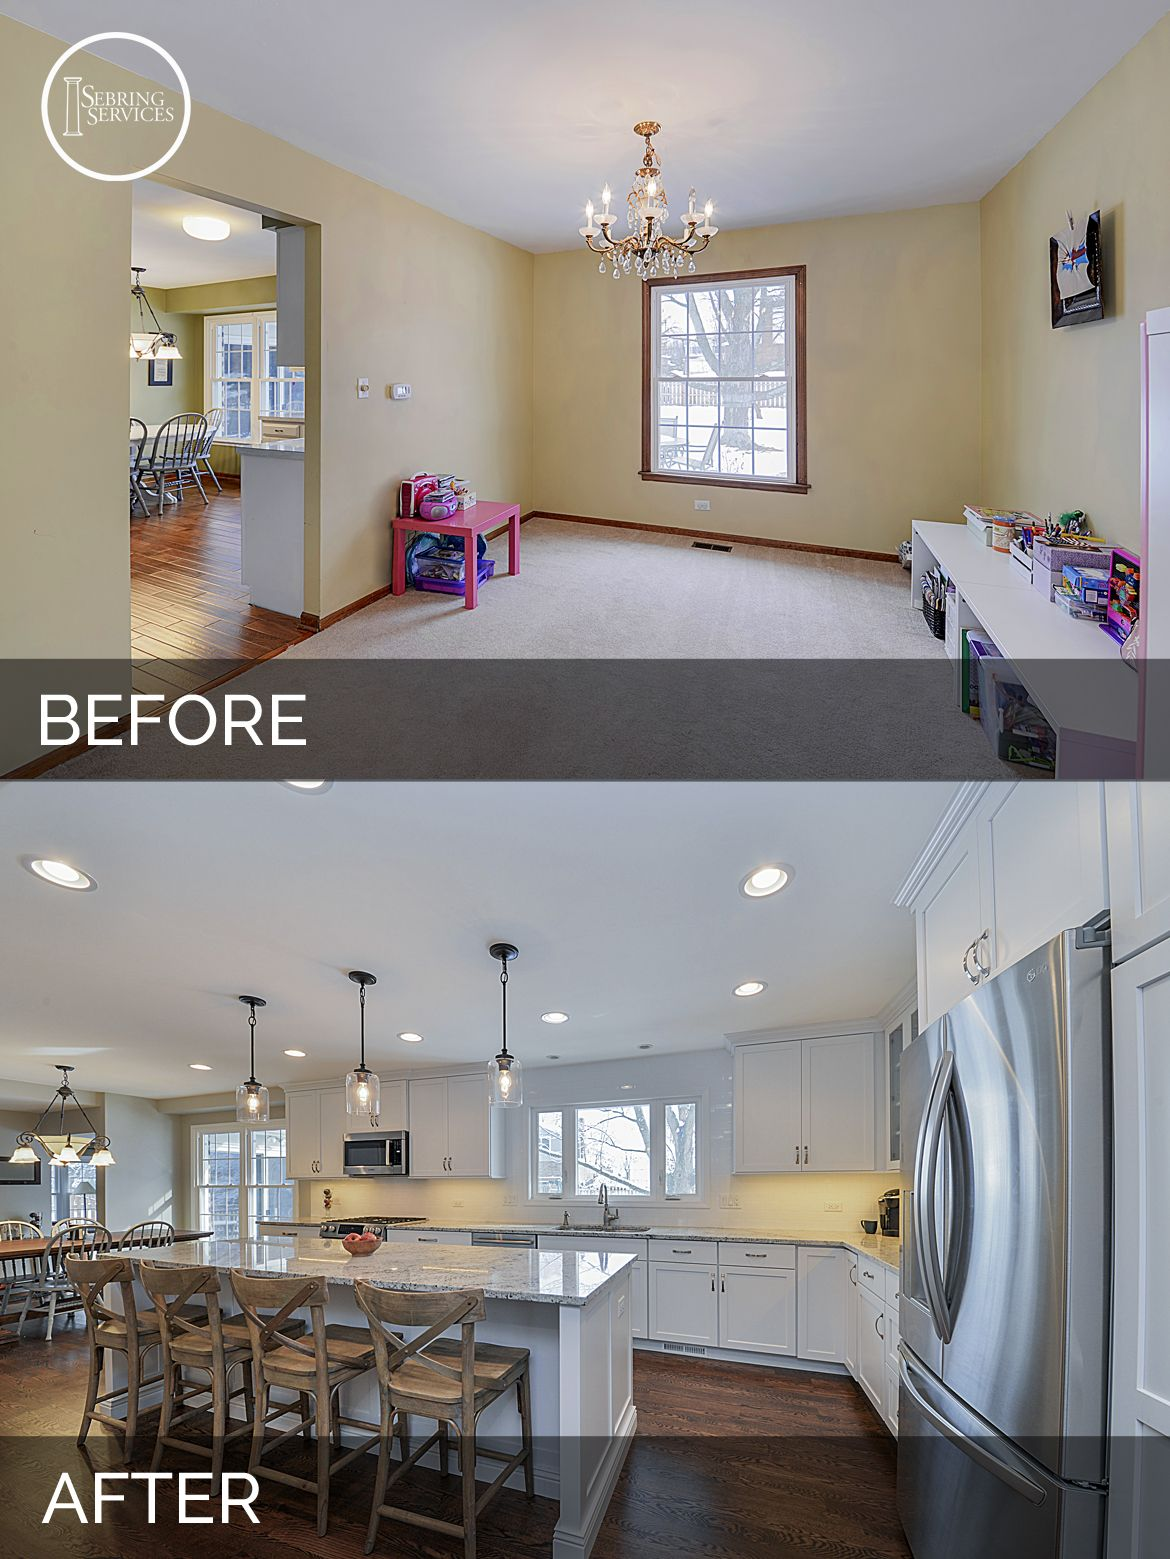 Before And After Small Kitchen: Ryan & Missy's Kitchen Before & After Pictures